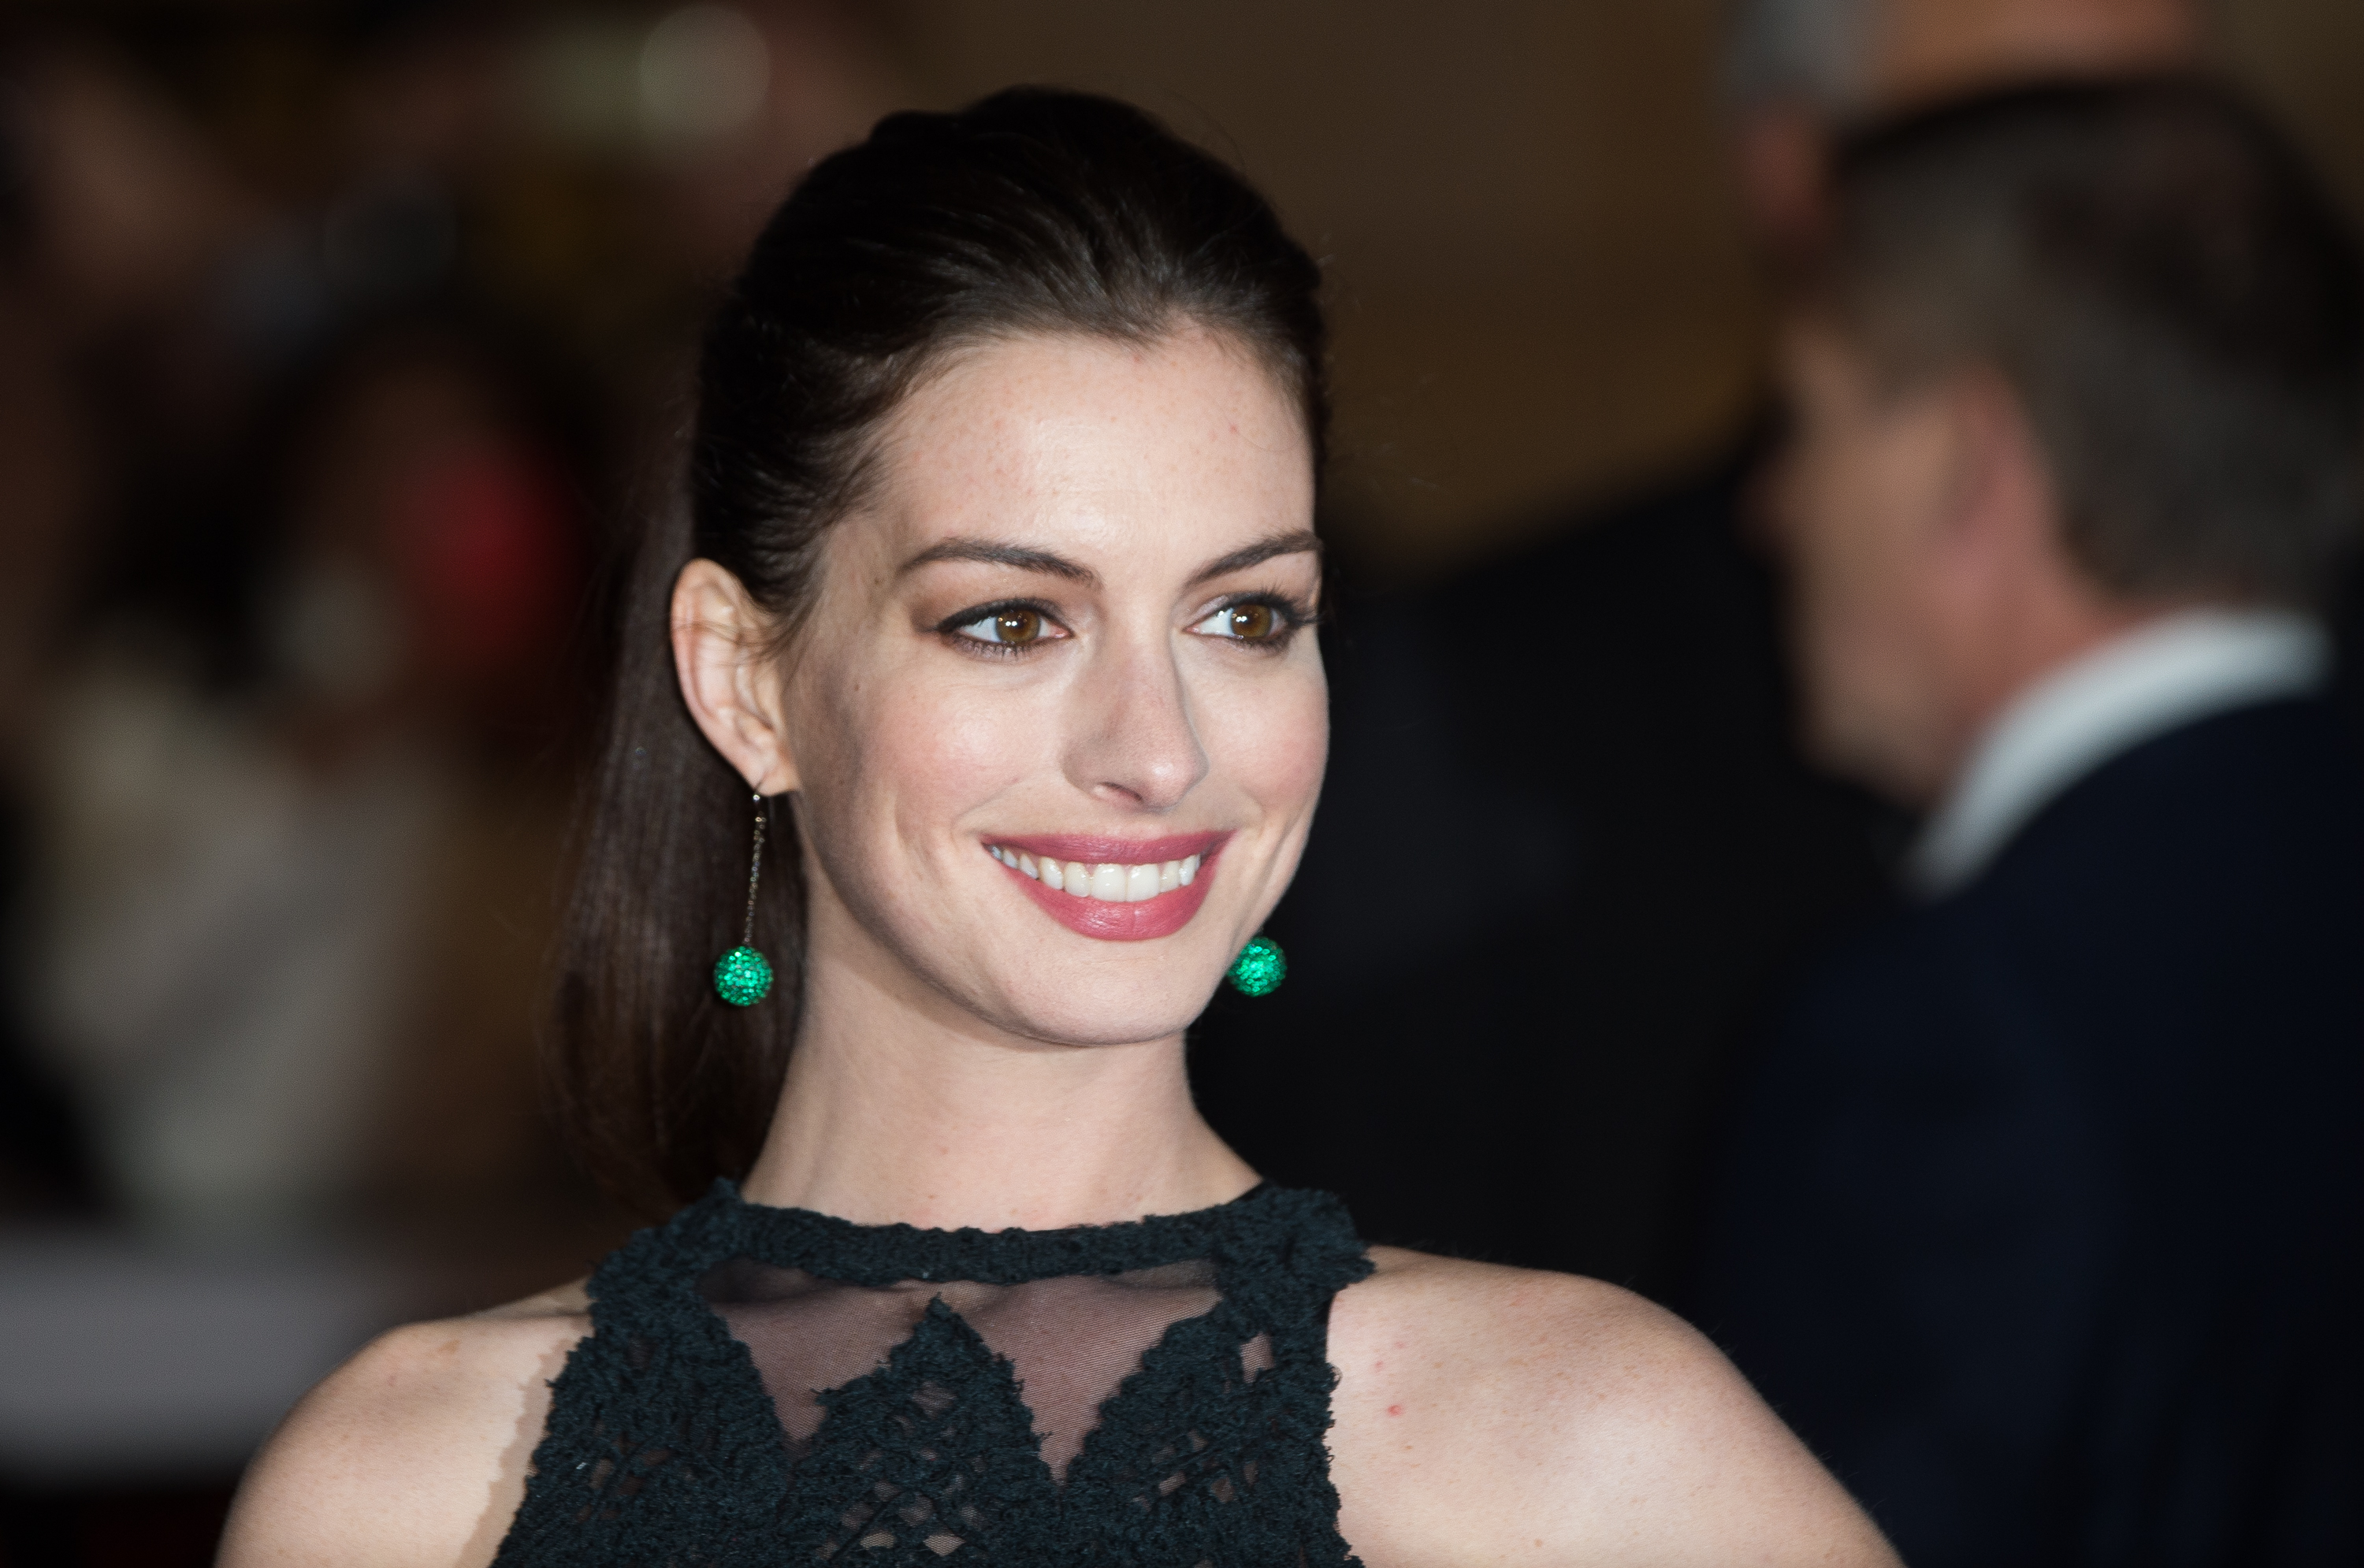 Anne Hathaway rocked combat boots to a gala and we're pretty impressed